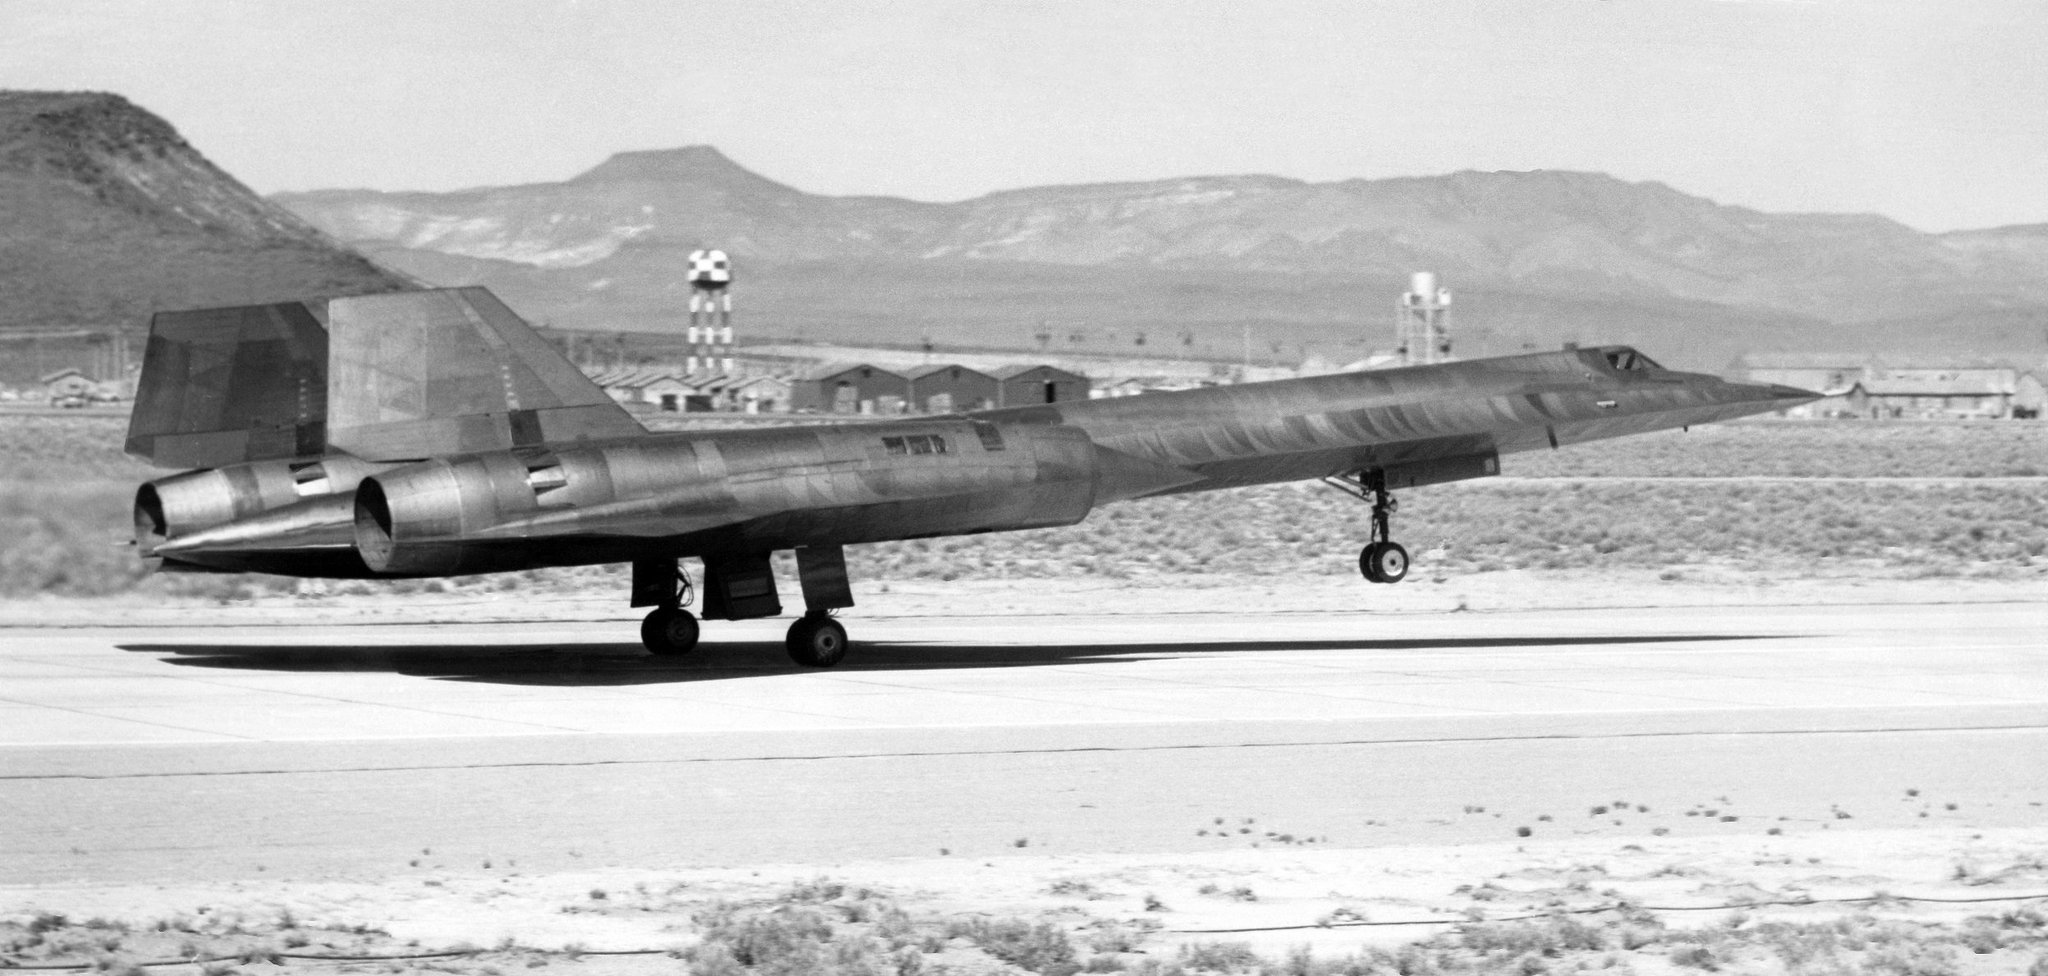 """Mark Collins on Twitter: """"""""Book Review: Illustrated History of America's  Legendary Mach 3 Spy Plane"""" #SkunkWorks #Lockheed #SR71 #A12 #YF12A #CIA  #USAF #ISR ..."""